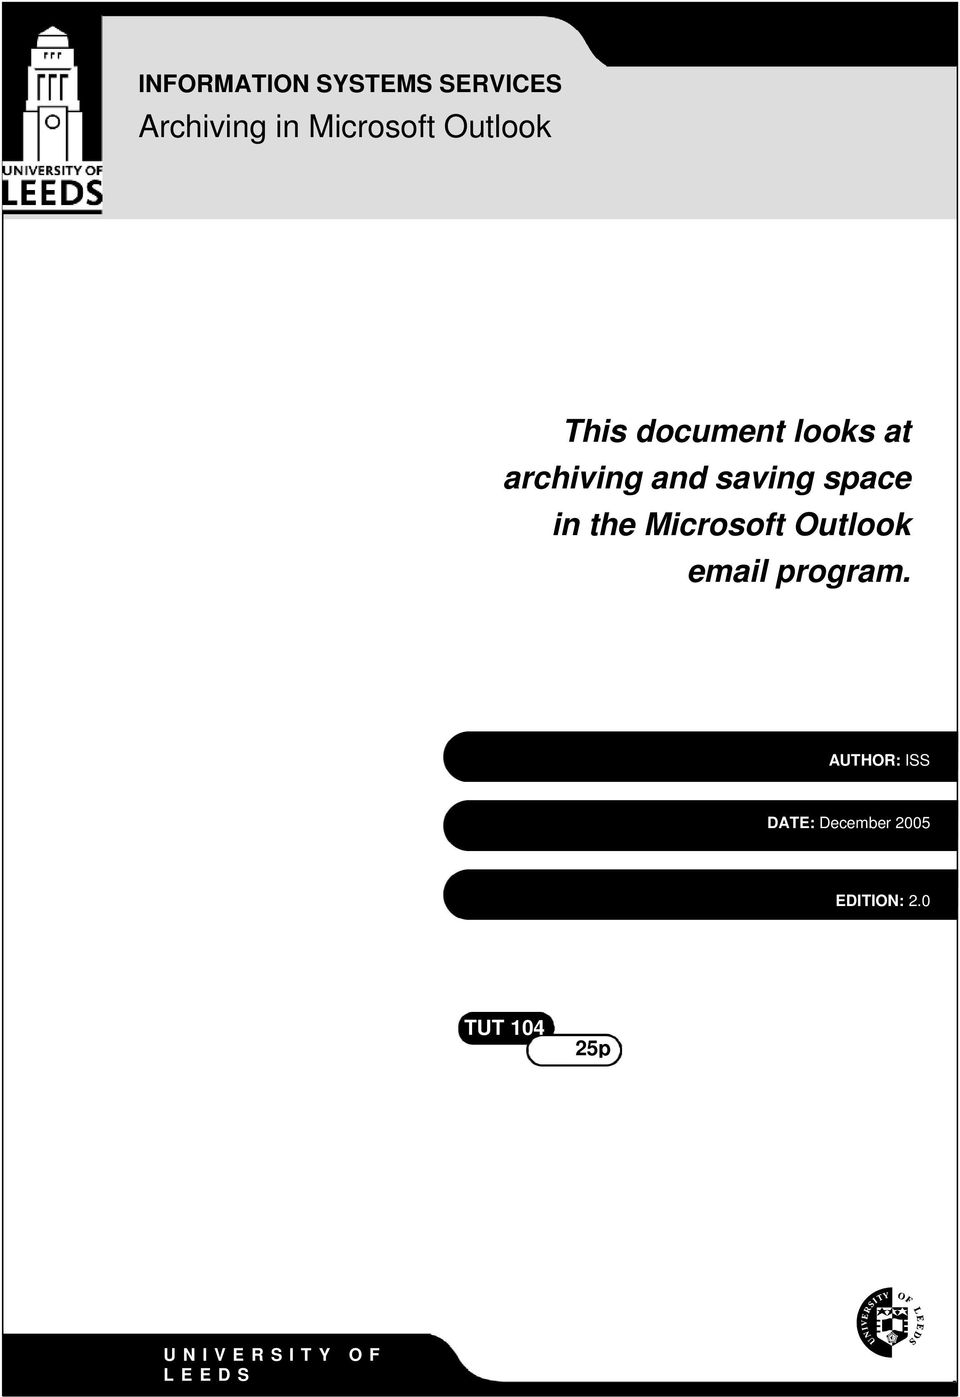 space in the Microsoft Outlook email program.